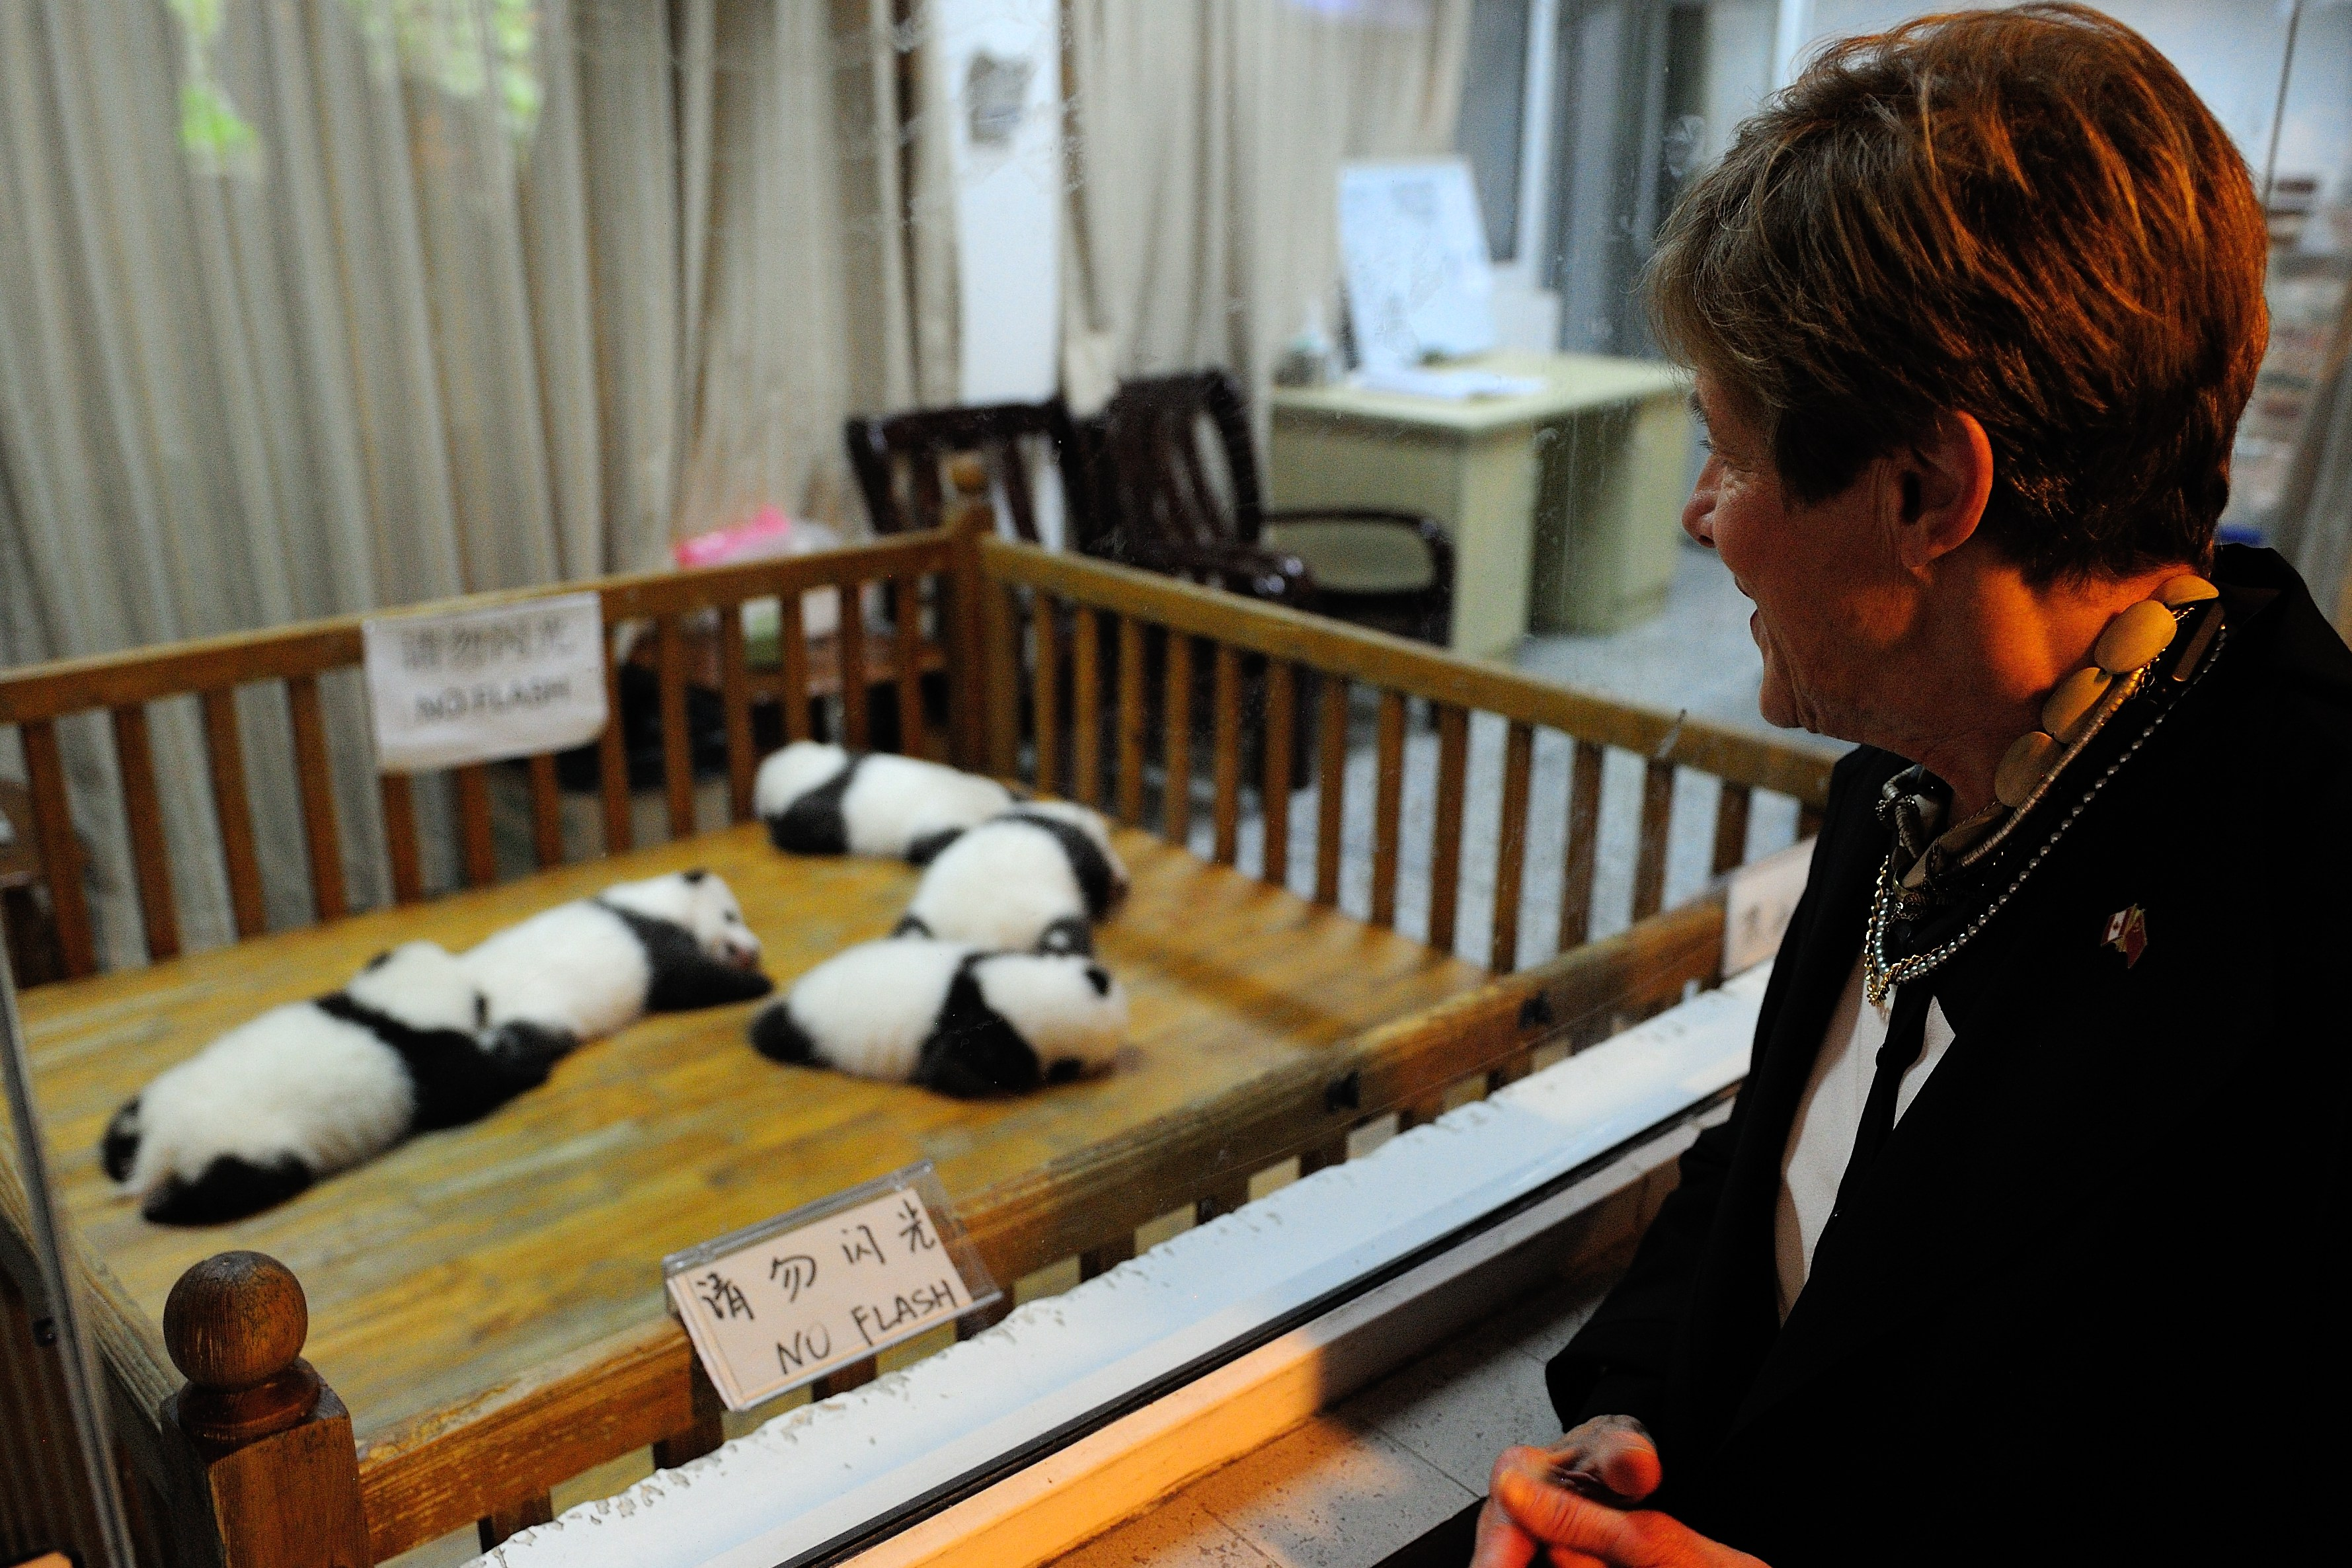 Her Excellency also had the opportunity to visit the centre's nursery and see the panda enclosures.